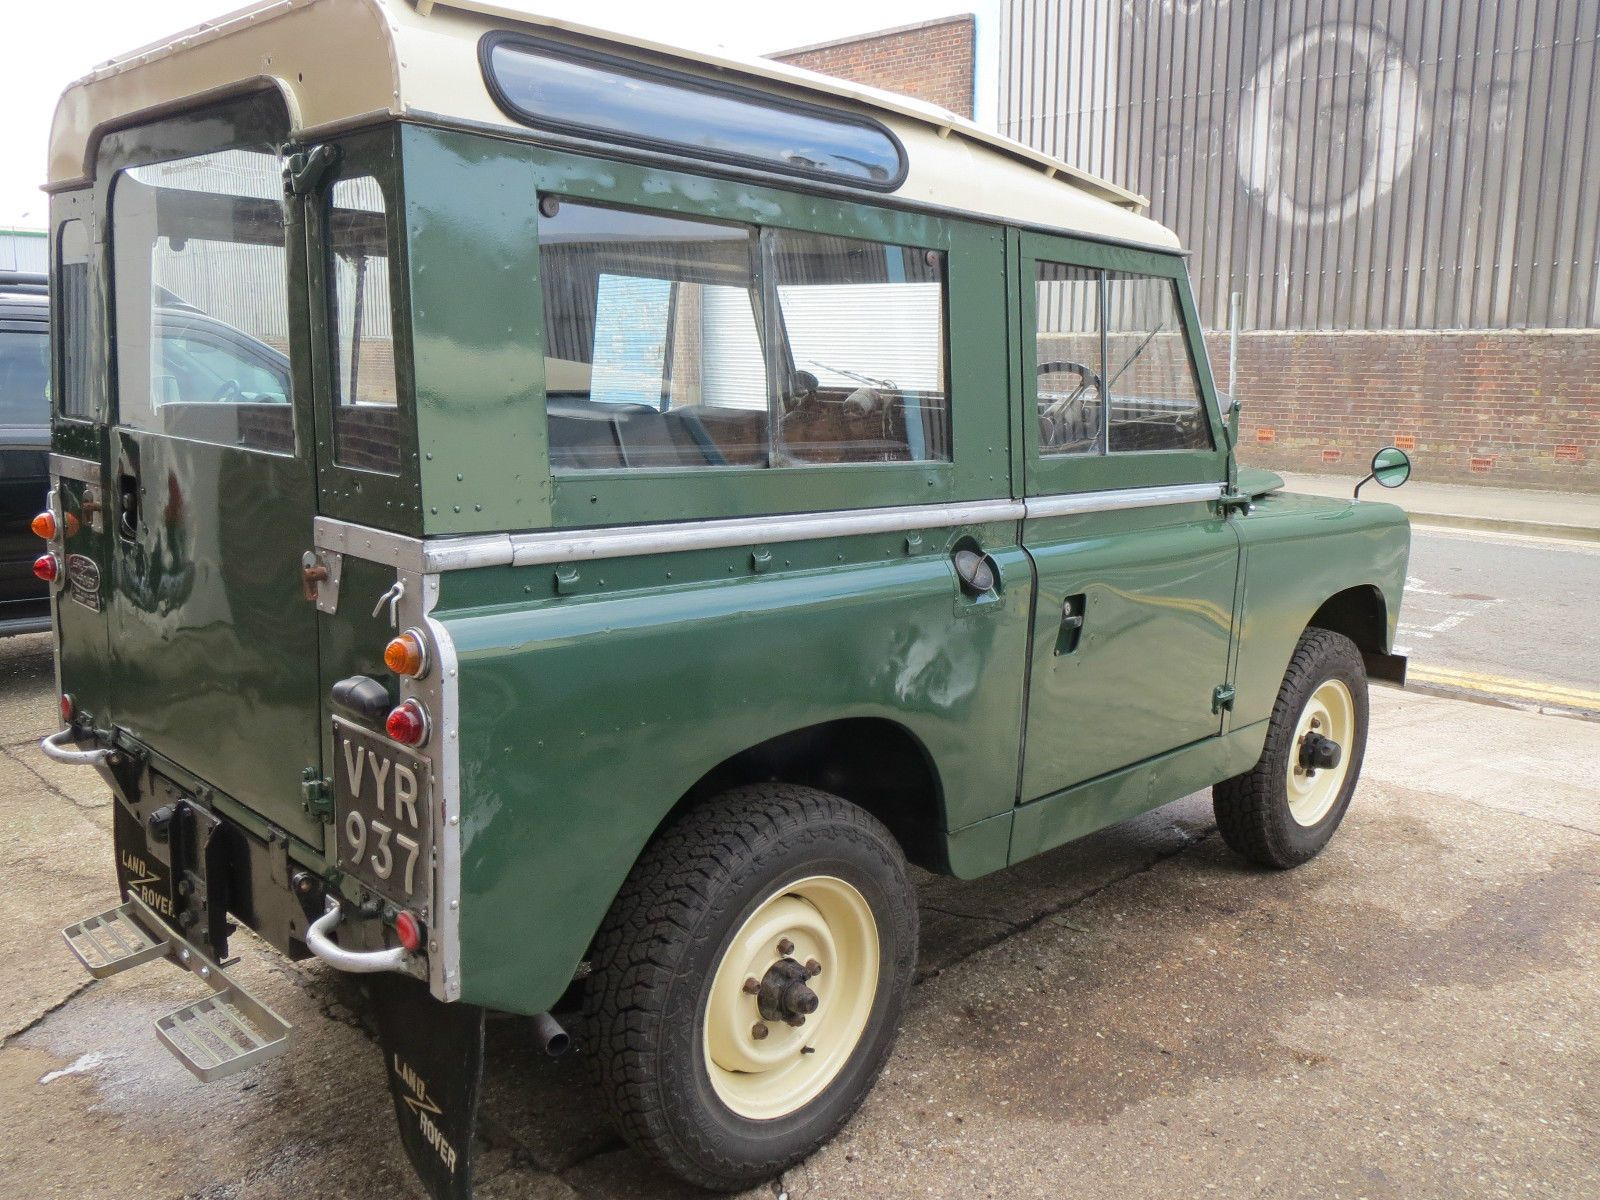 THIS IS AN EXCELLENT OPPORTUNITY TO OWN A VERY USEABLE CLASSIC